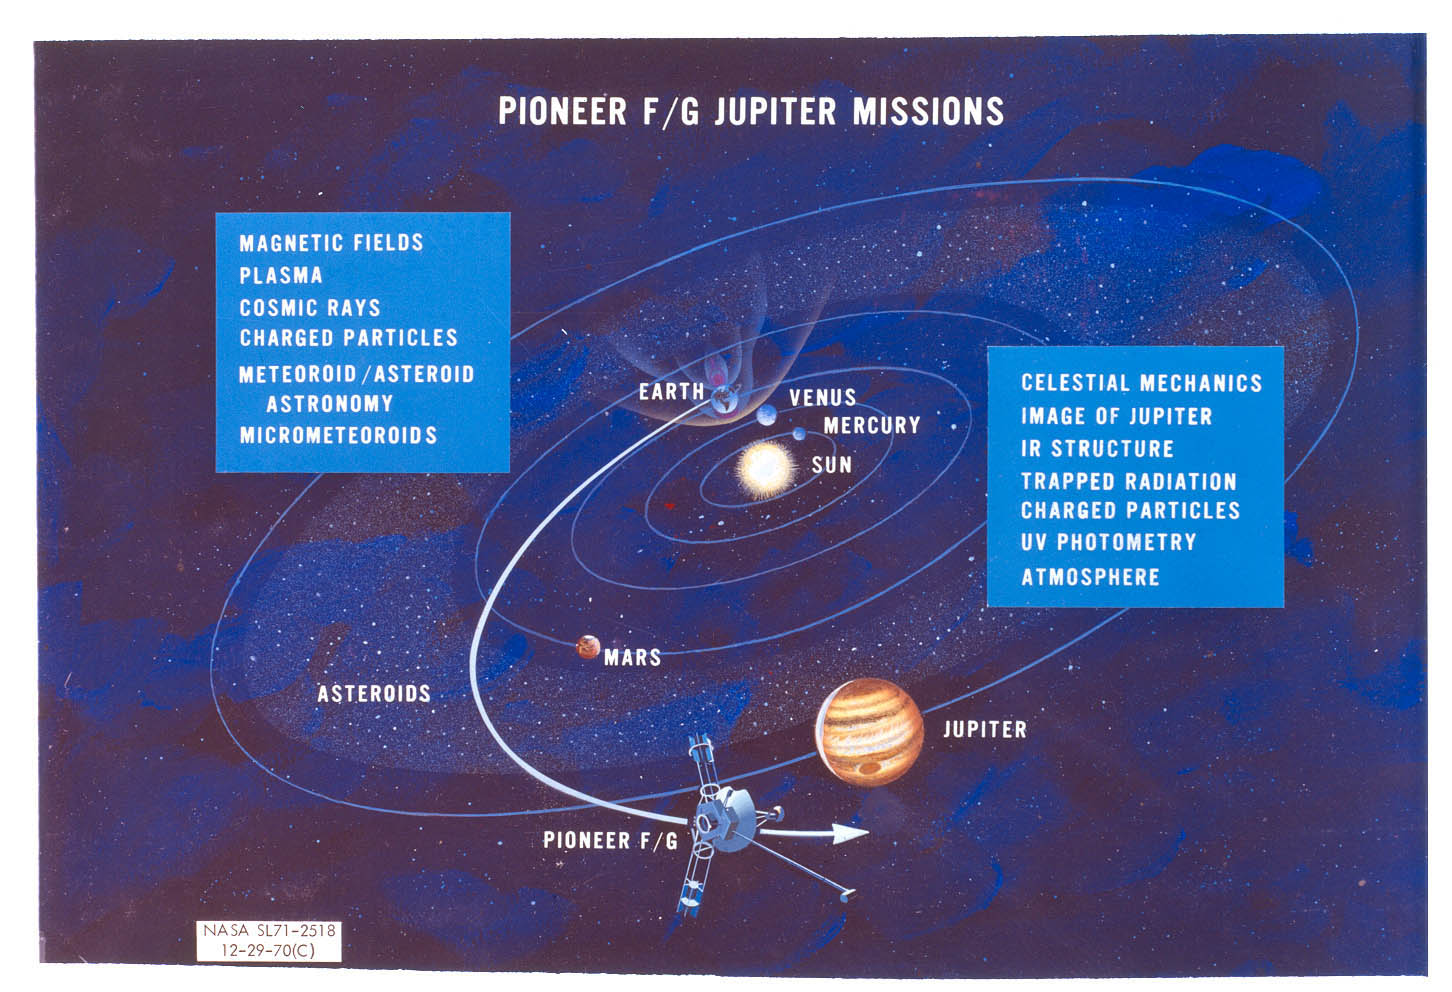 pioneer 10 nasa phase design - photo #2